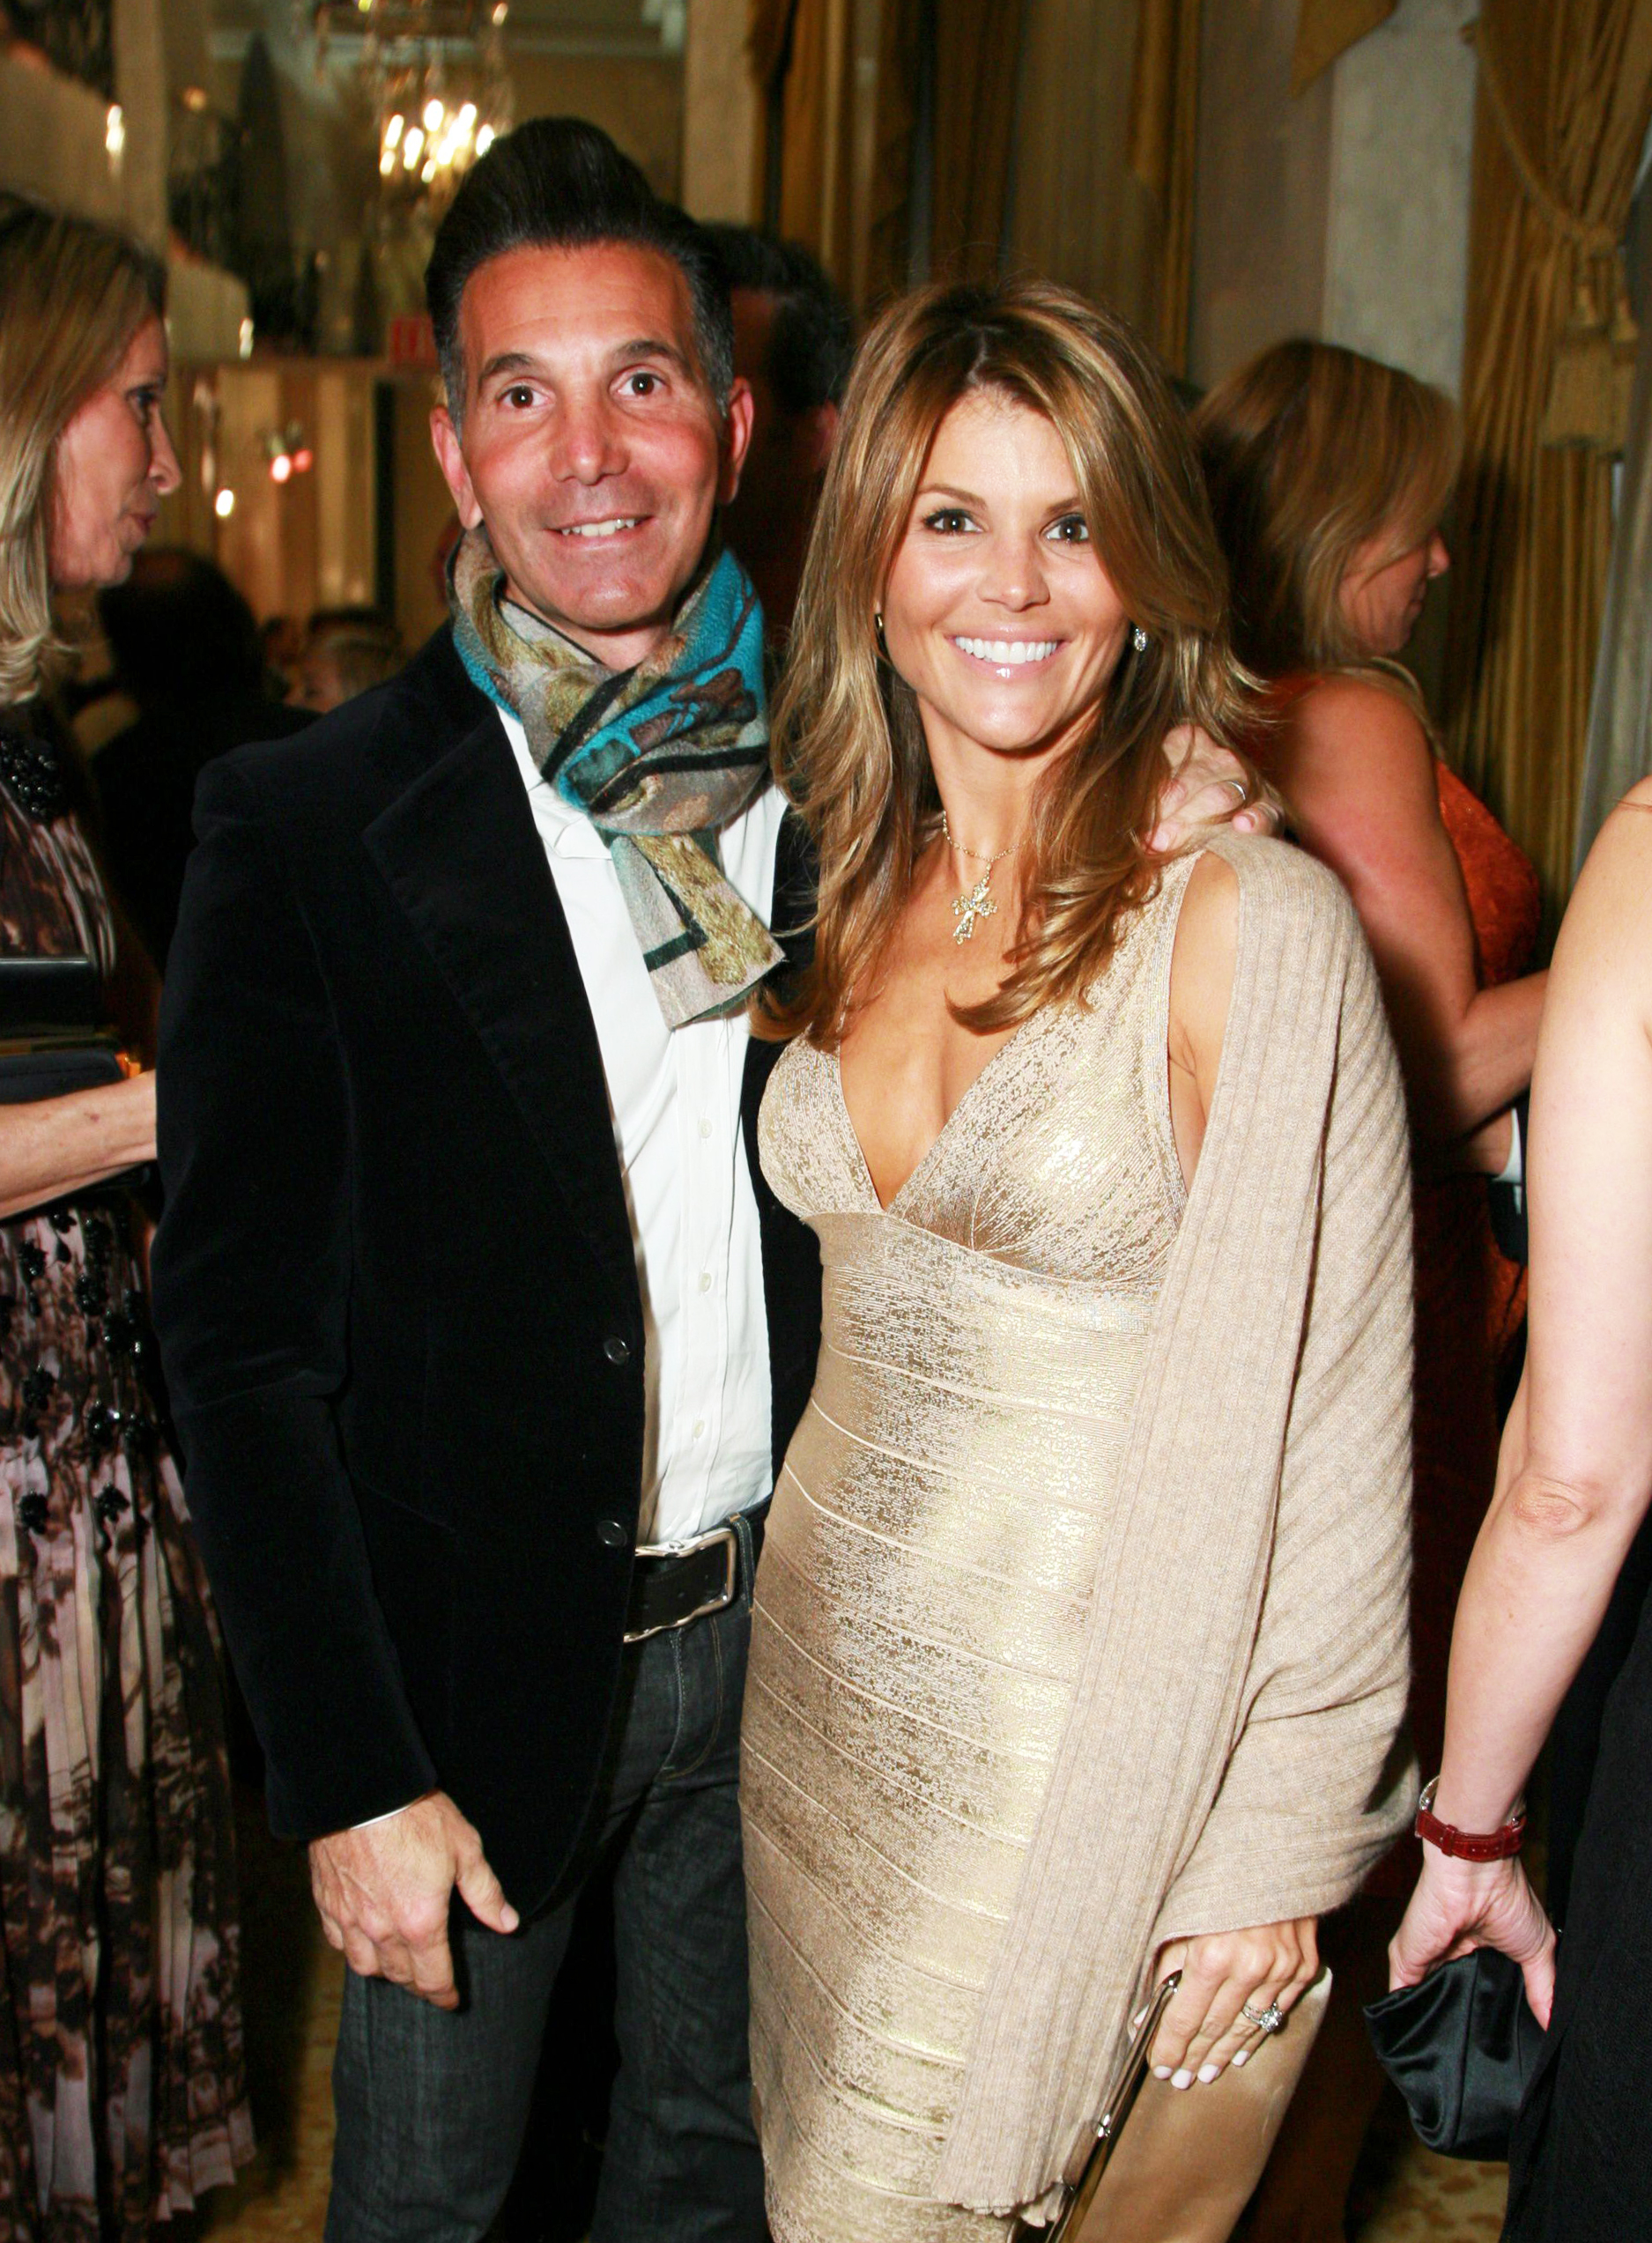 Lori Loughlin and Mossimo Giannulli Sell $18 Million Bel-Air Mansion Amid College Admissions Case